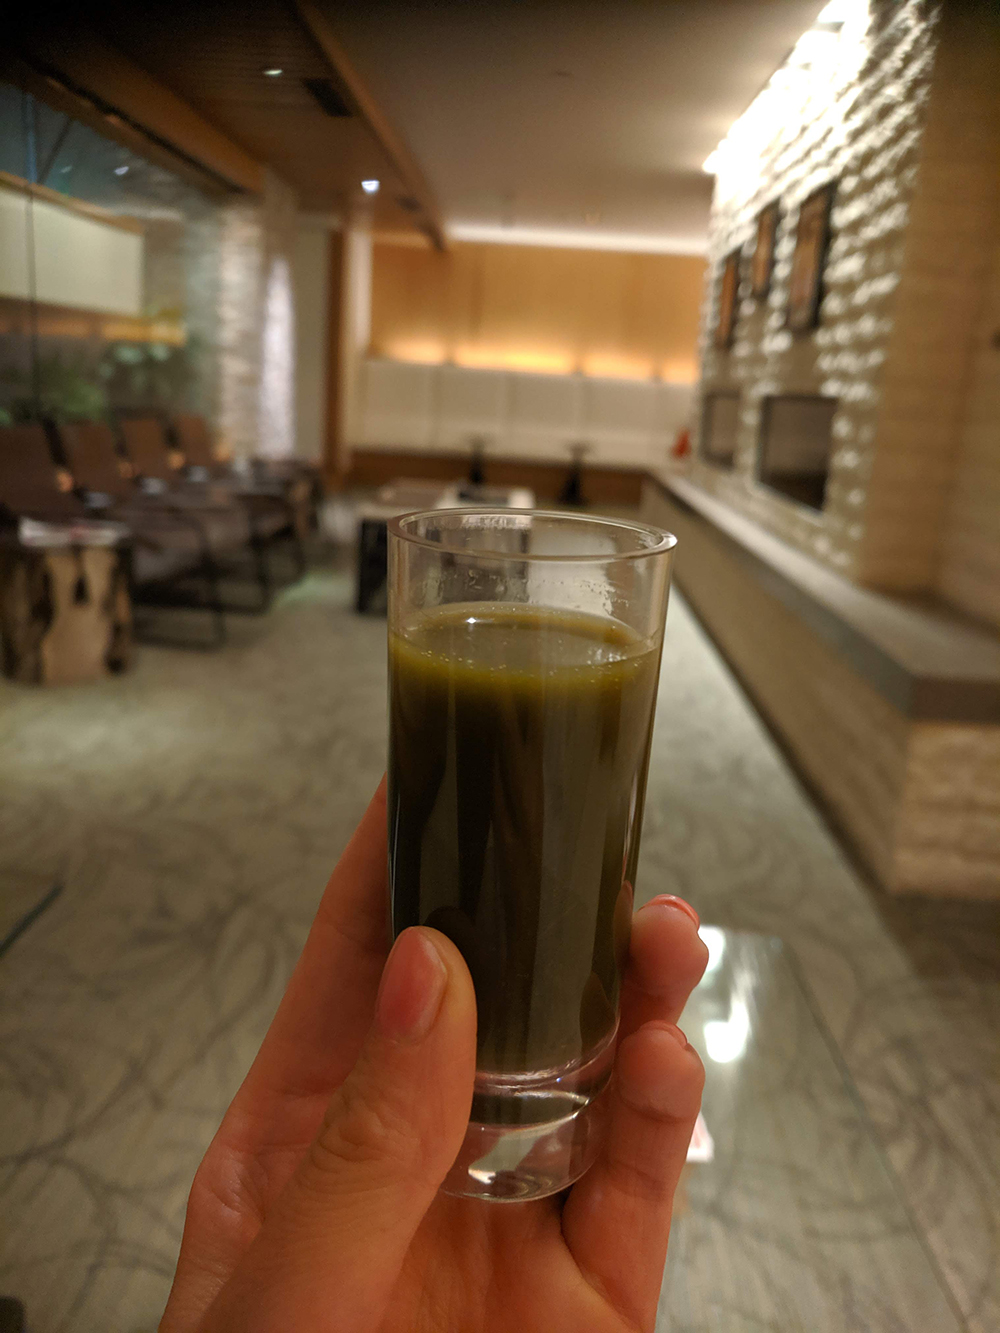 Smoothie with spa resized.jpg